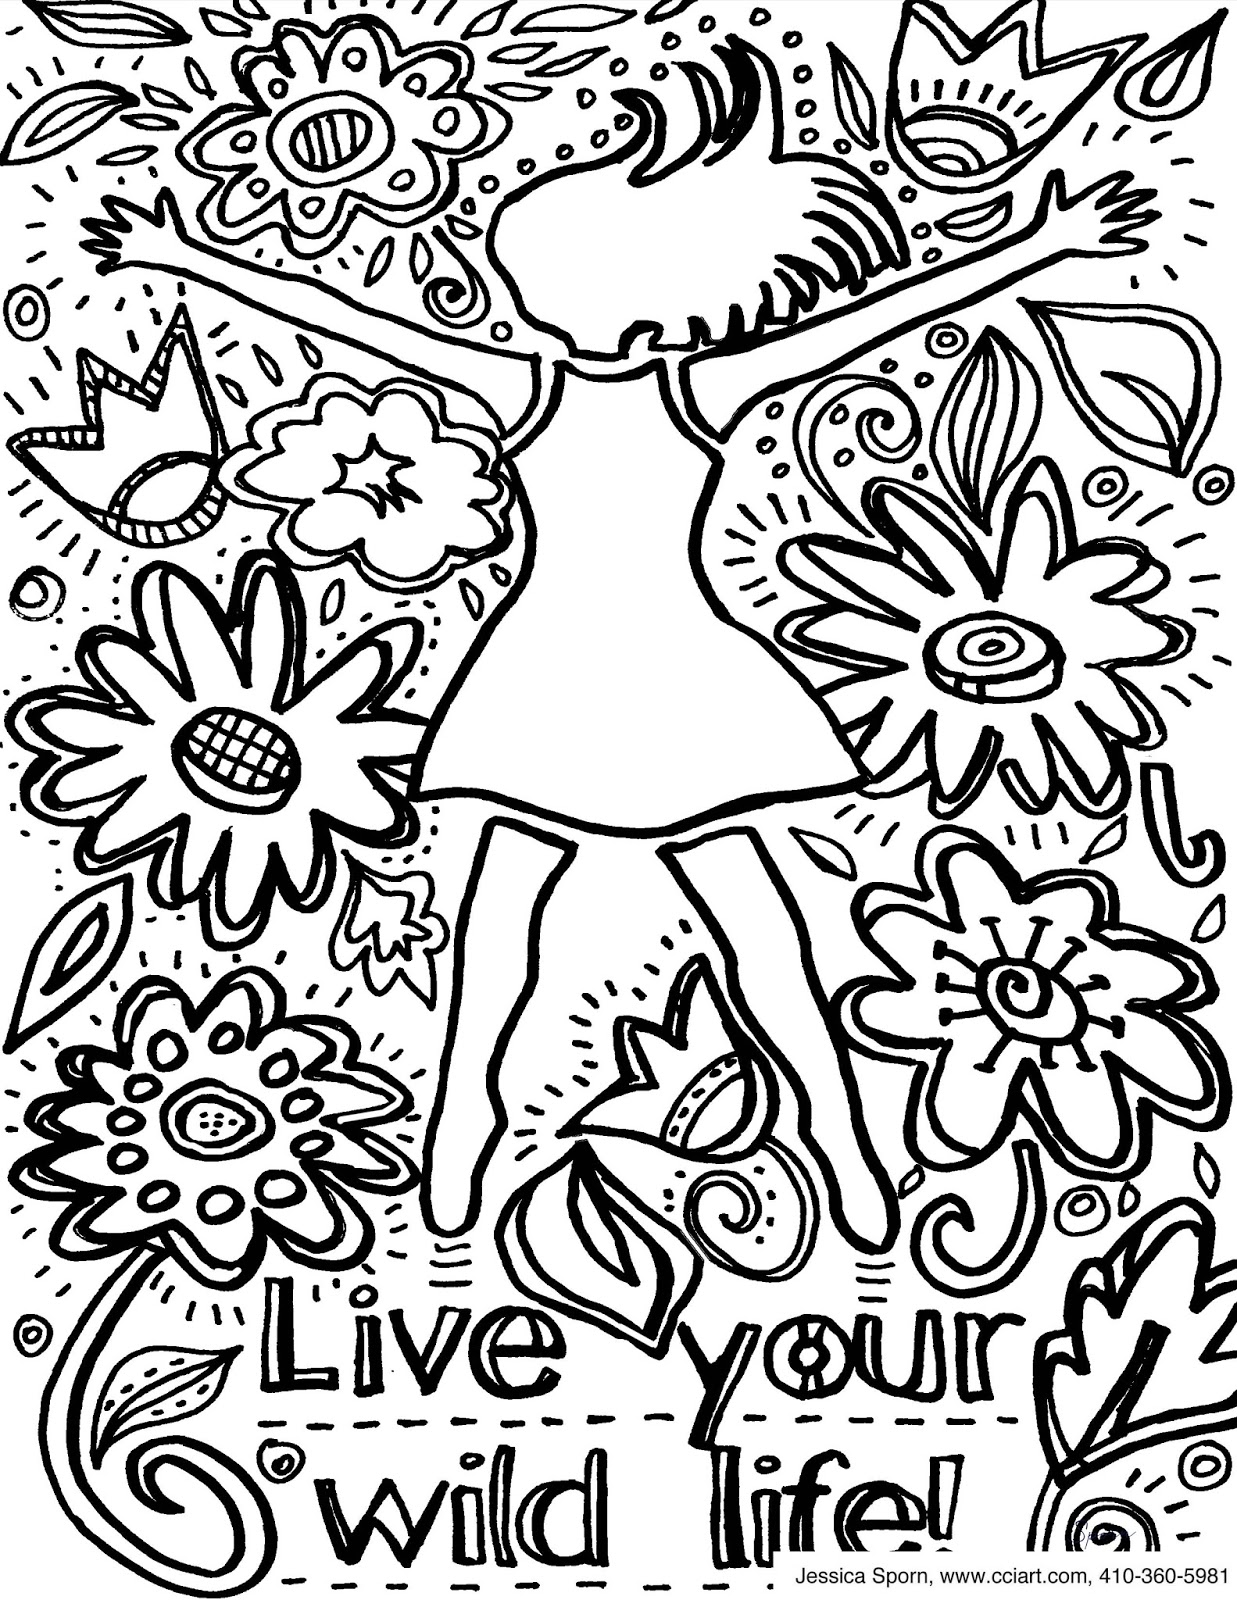 Jessica Sporn Designs: How To Create Your Own Coloring Pages With